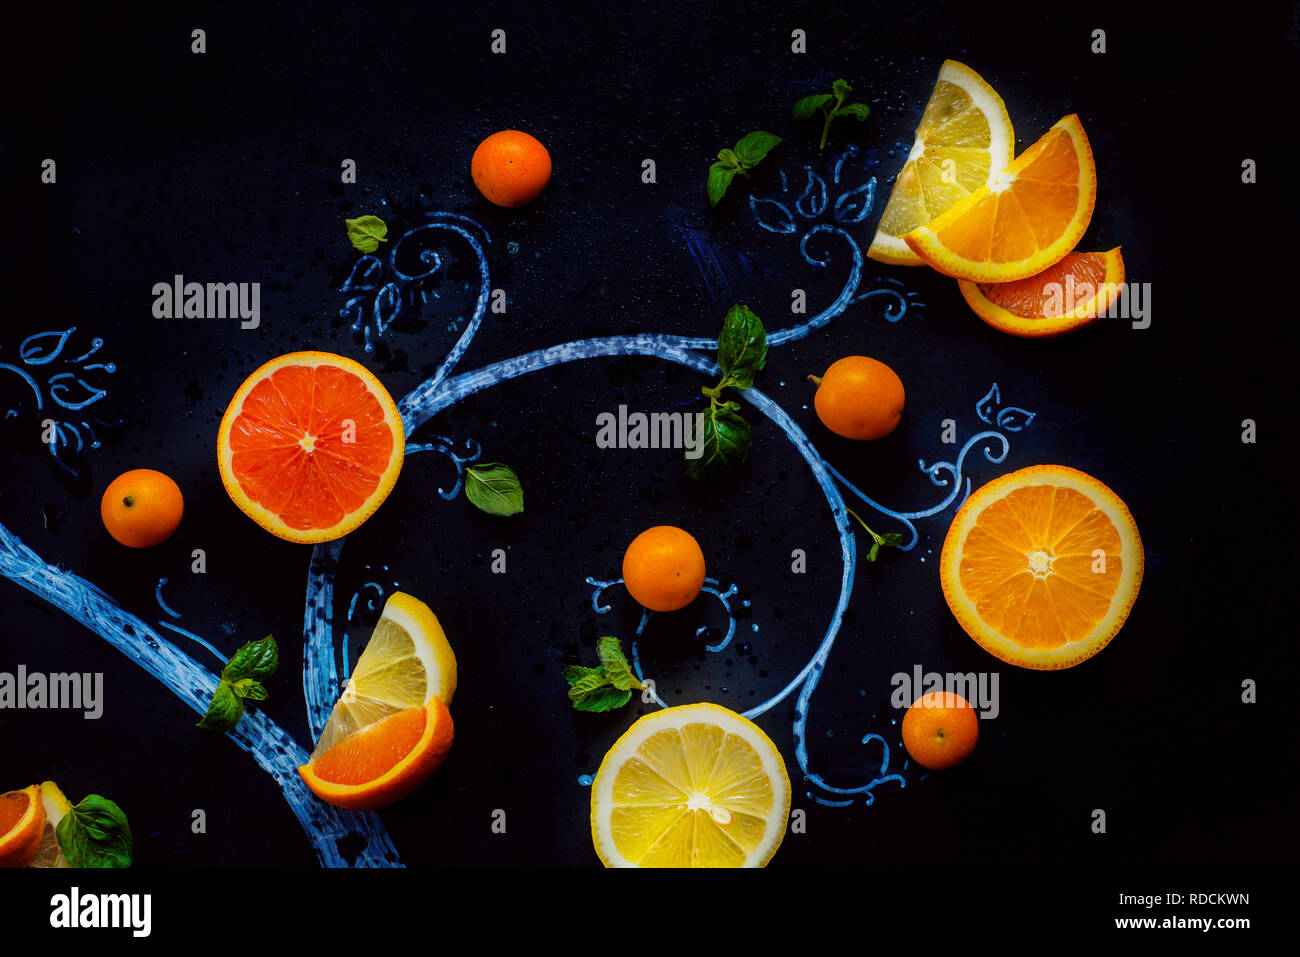 Lemon tea chalk tree with teacups, oranges and lemon slices, mint leaves and kumquats. Hot drink creative flat lay on a dark background with copy space - Stock Image